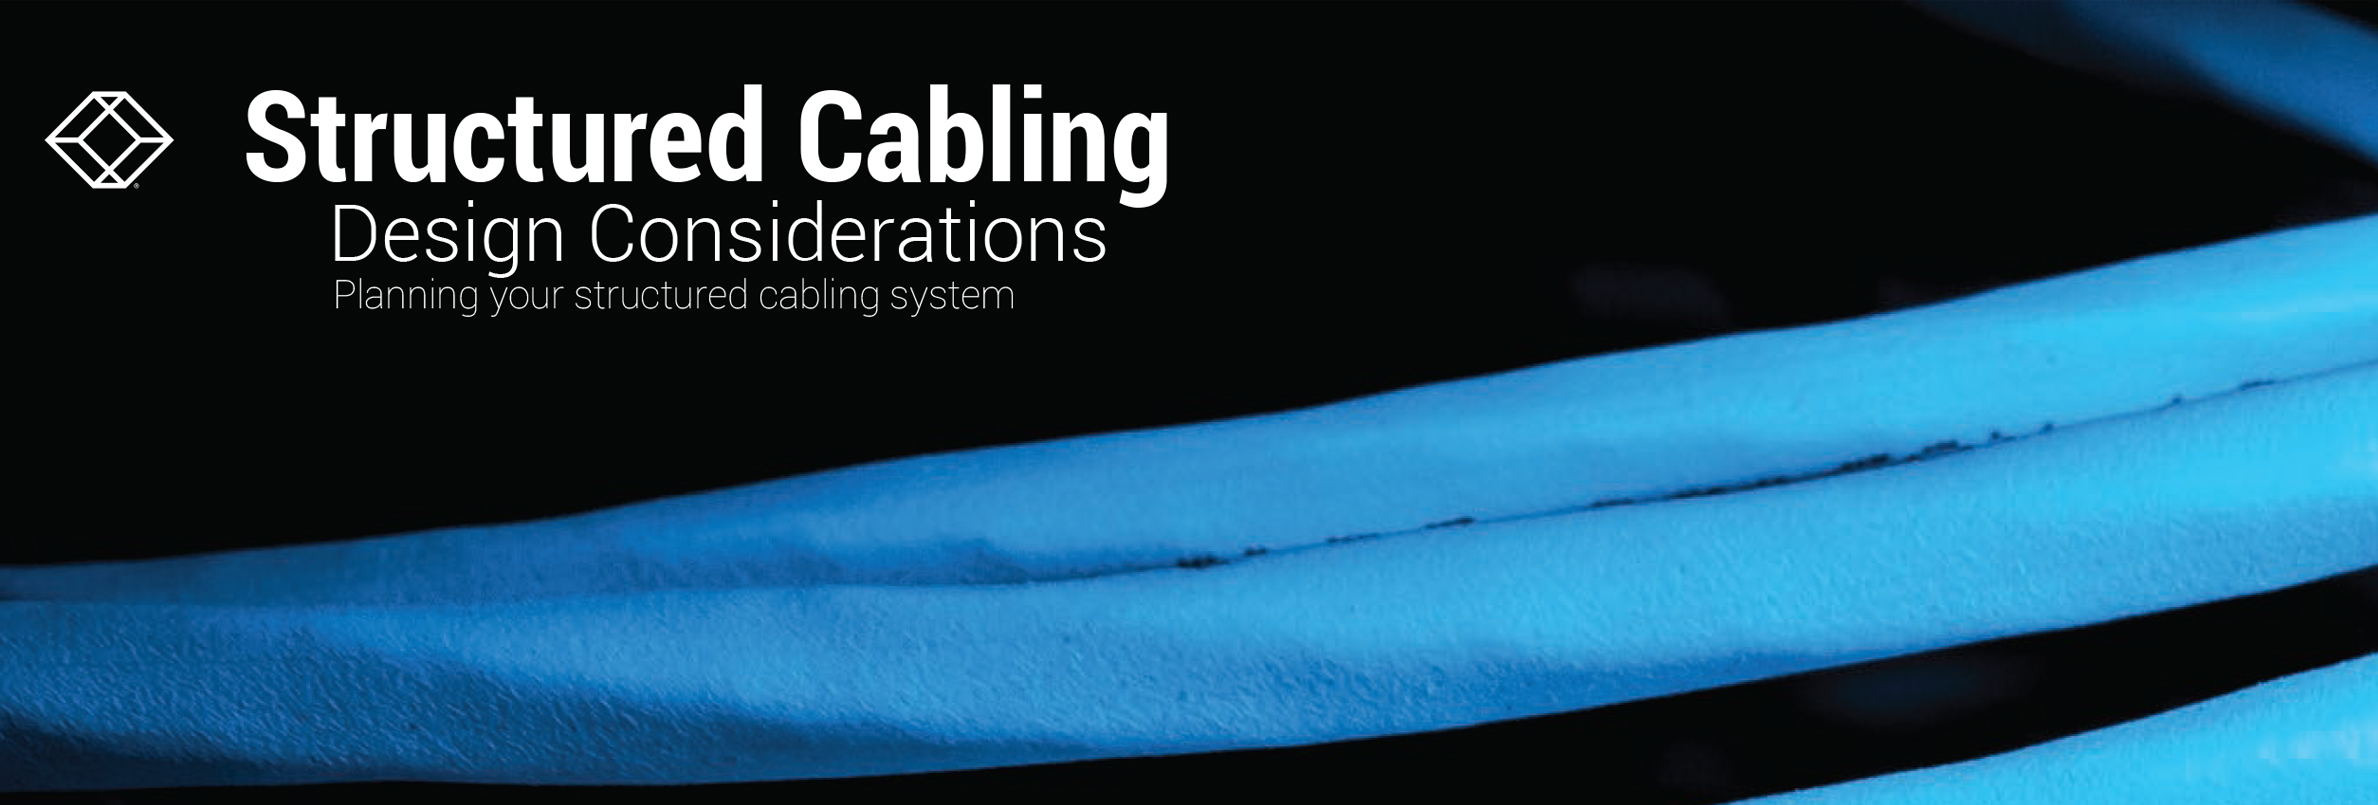 Design-Considerations-Structured-Cabling